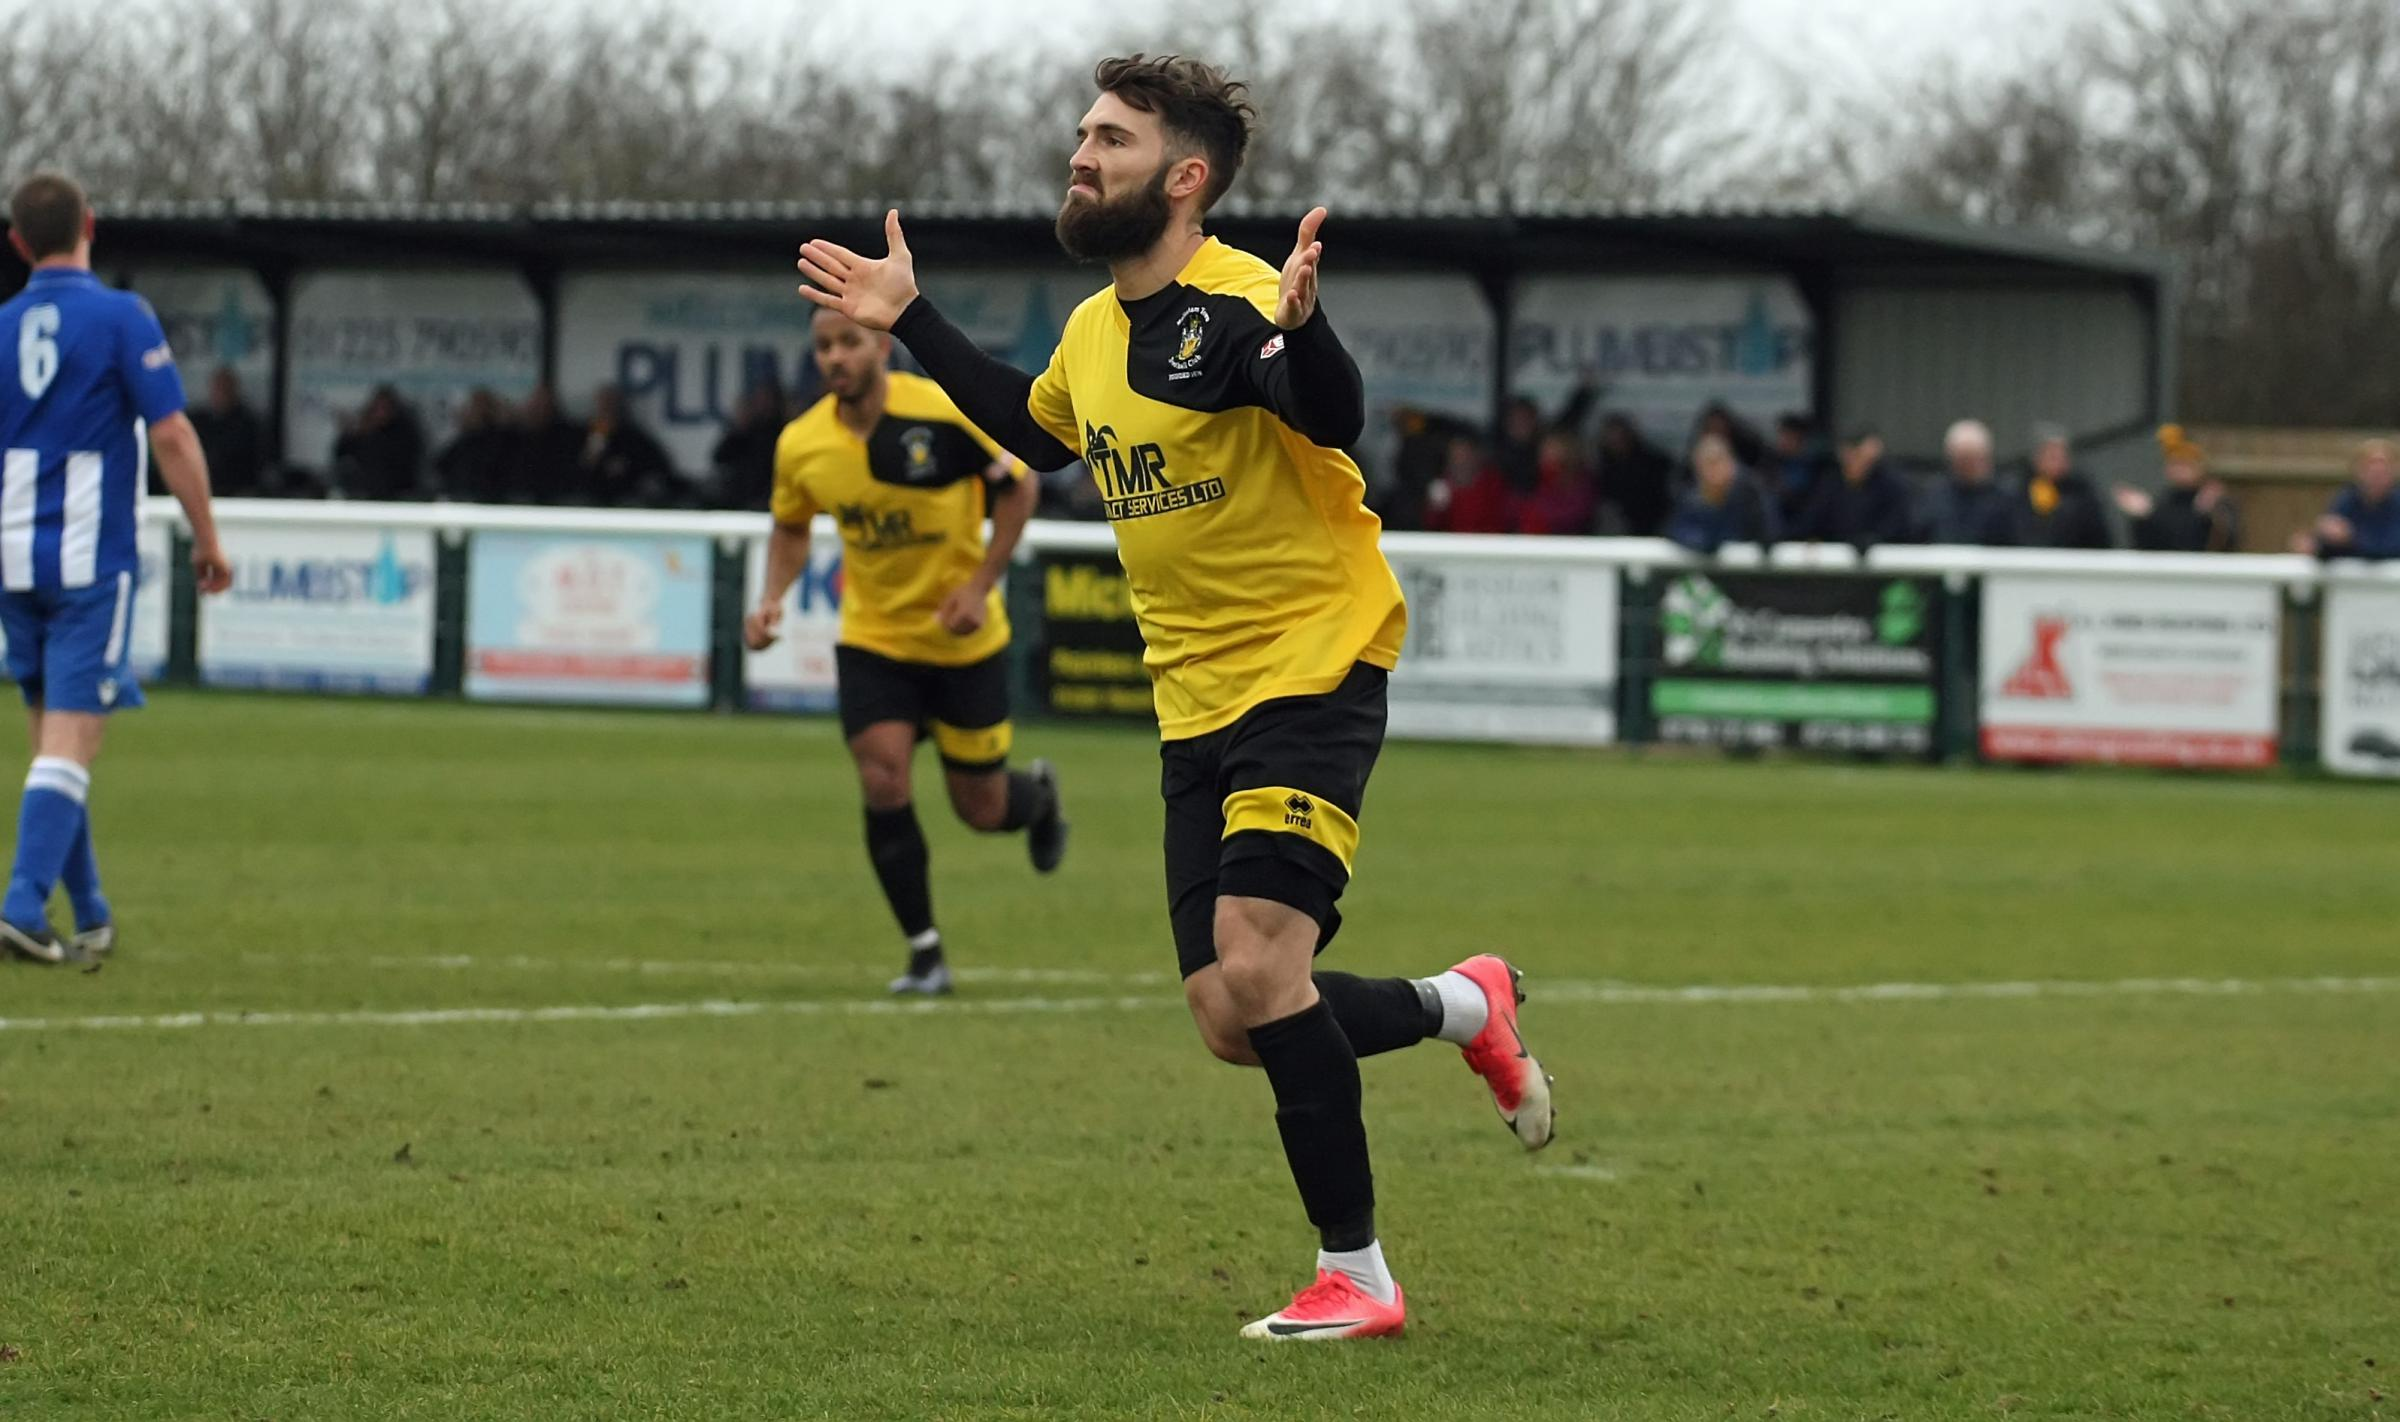 Melksham Town v Thatcham Town; Saturday, March 2, 2019; PICTURE: ROBIN FOSTER - Jon Davies